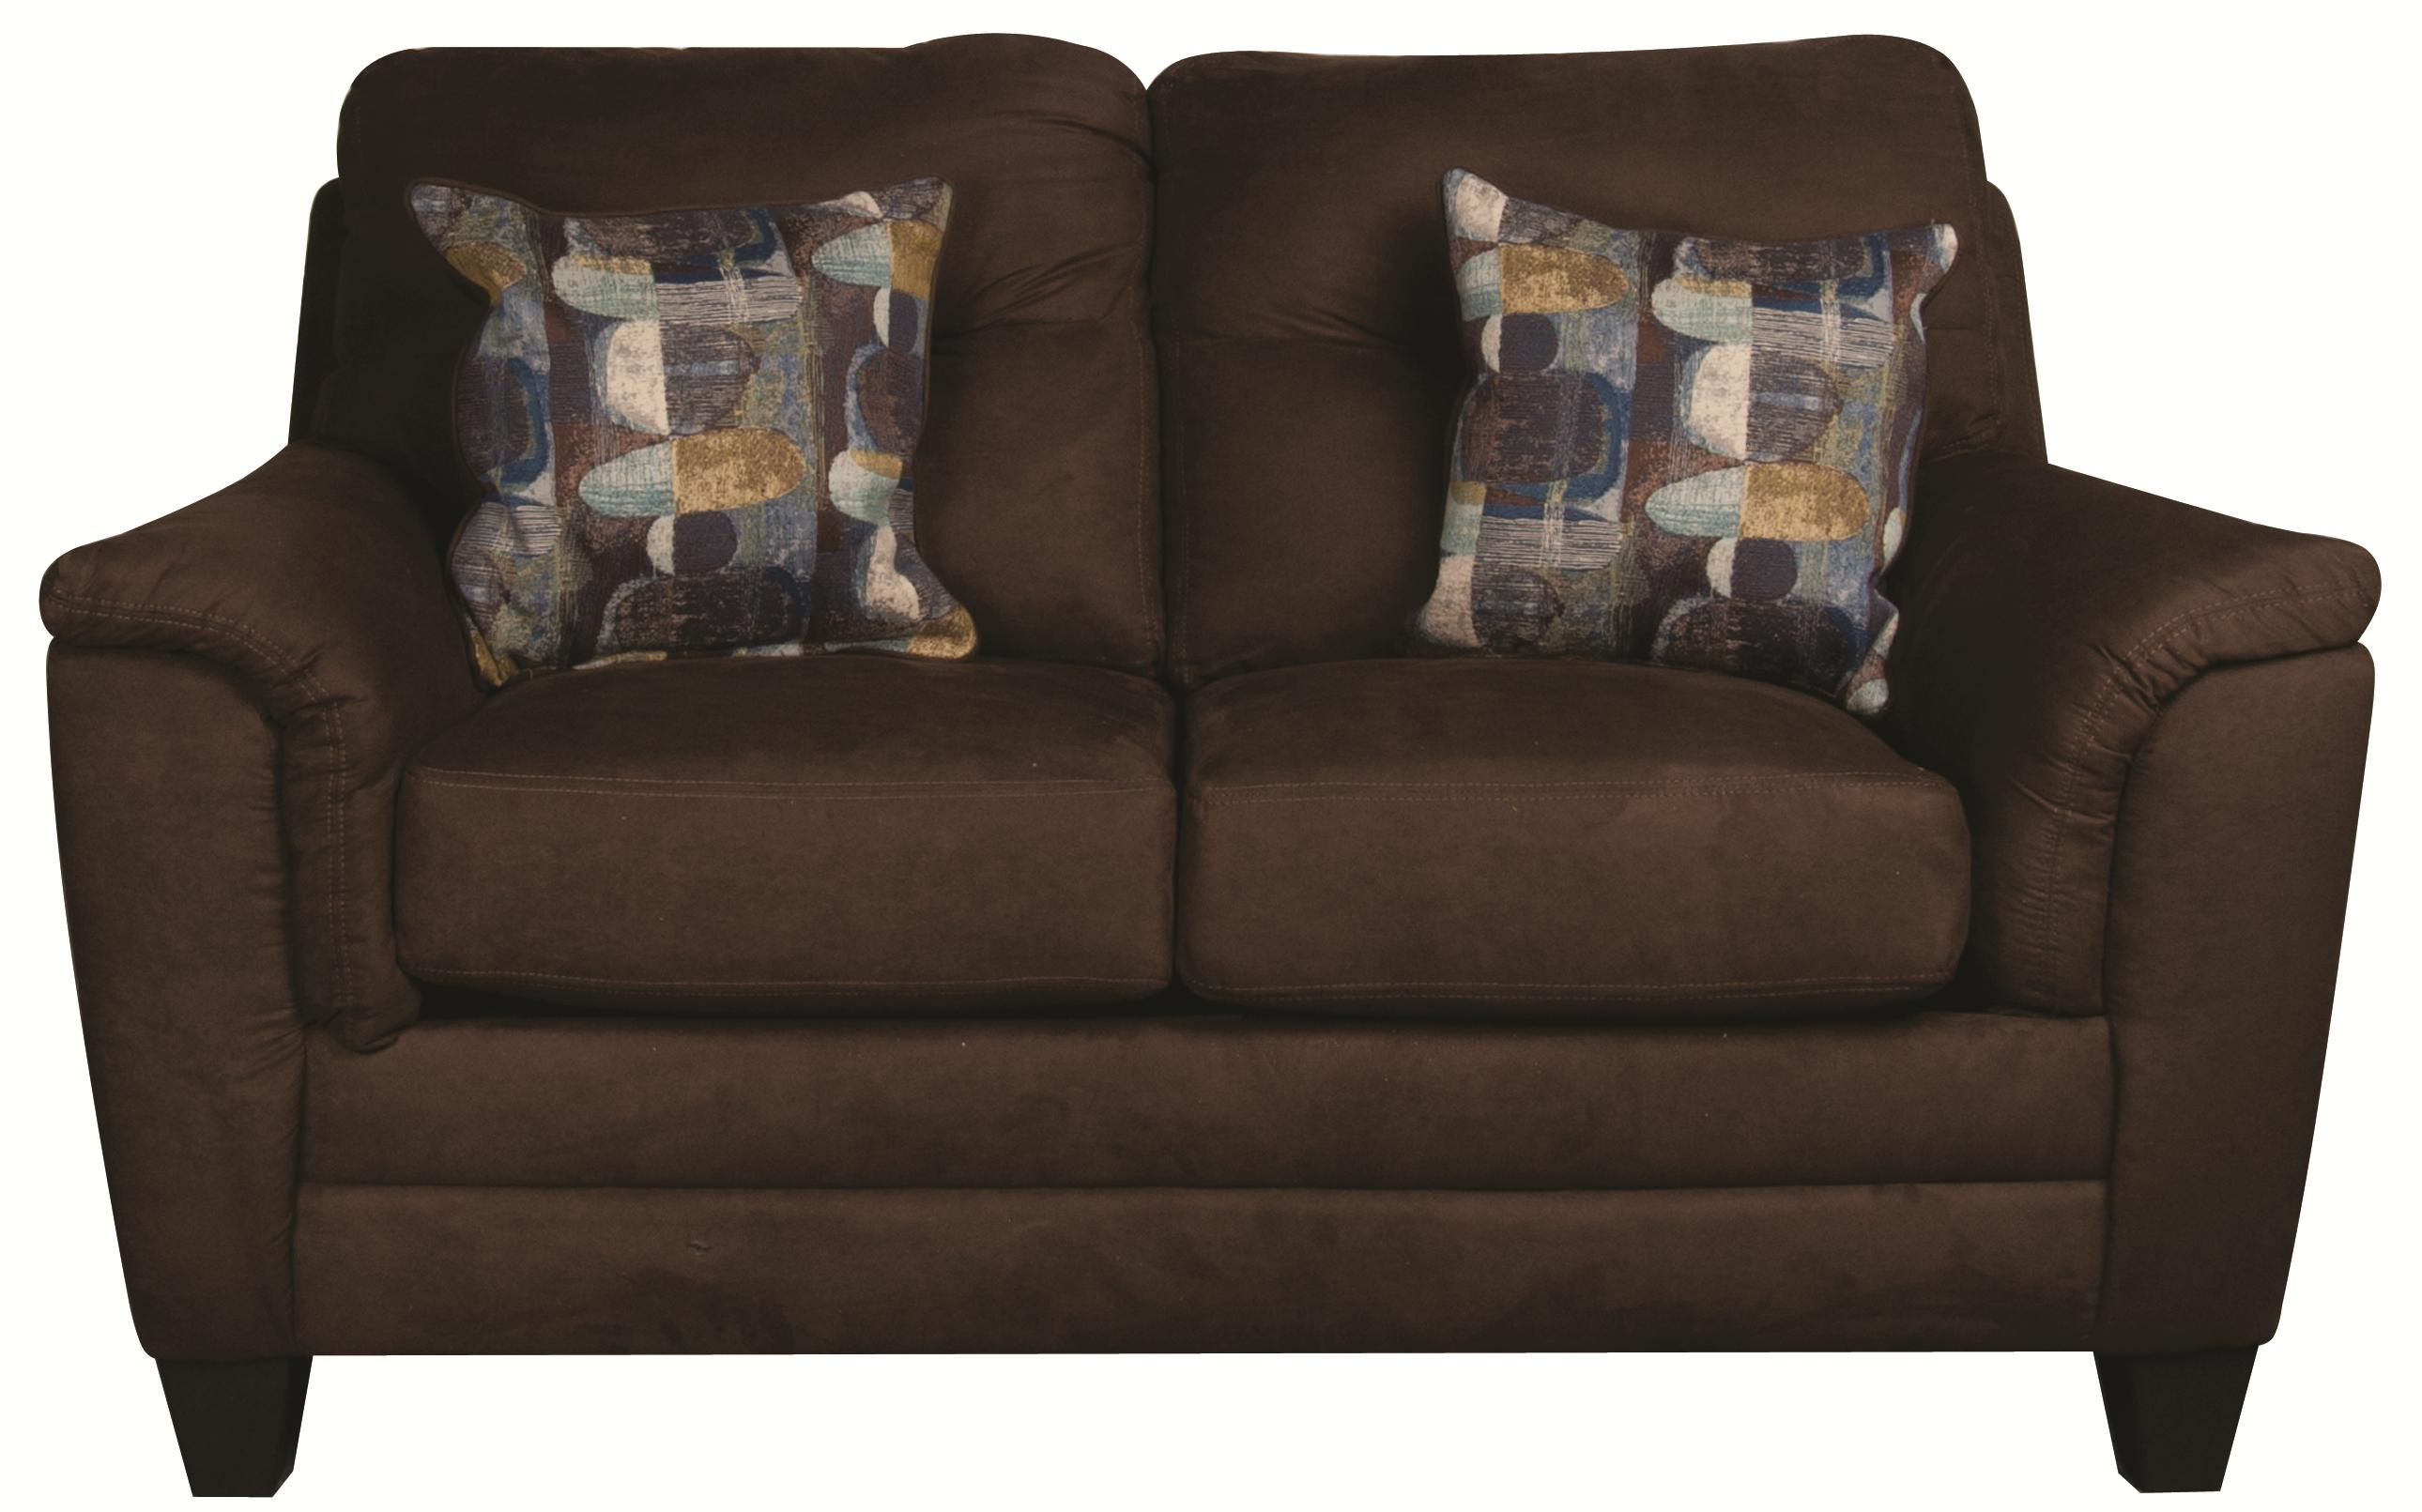 Morris Home Furnishings Edgar Edgar Loveseat - Item Number: 104820166